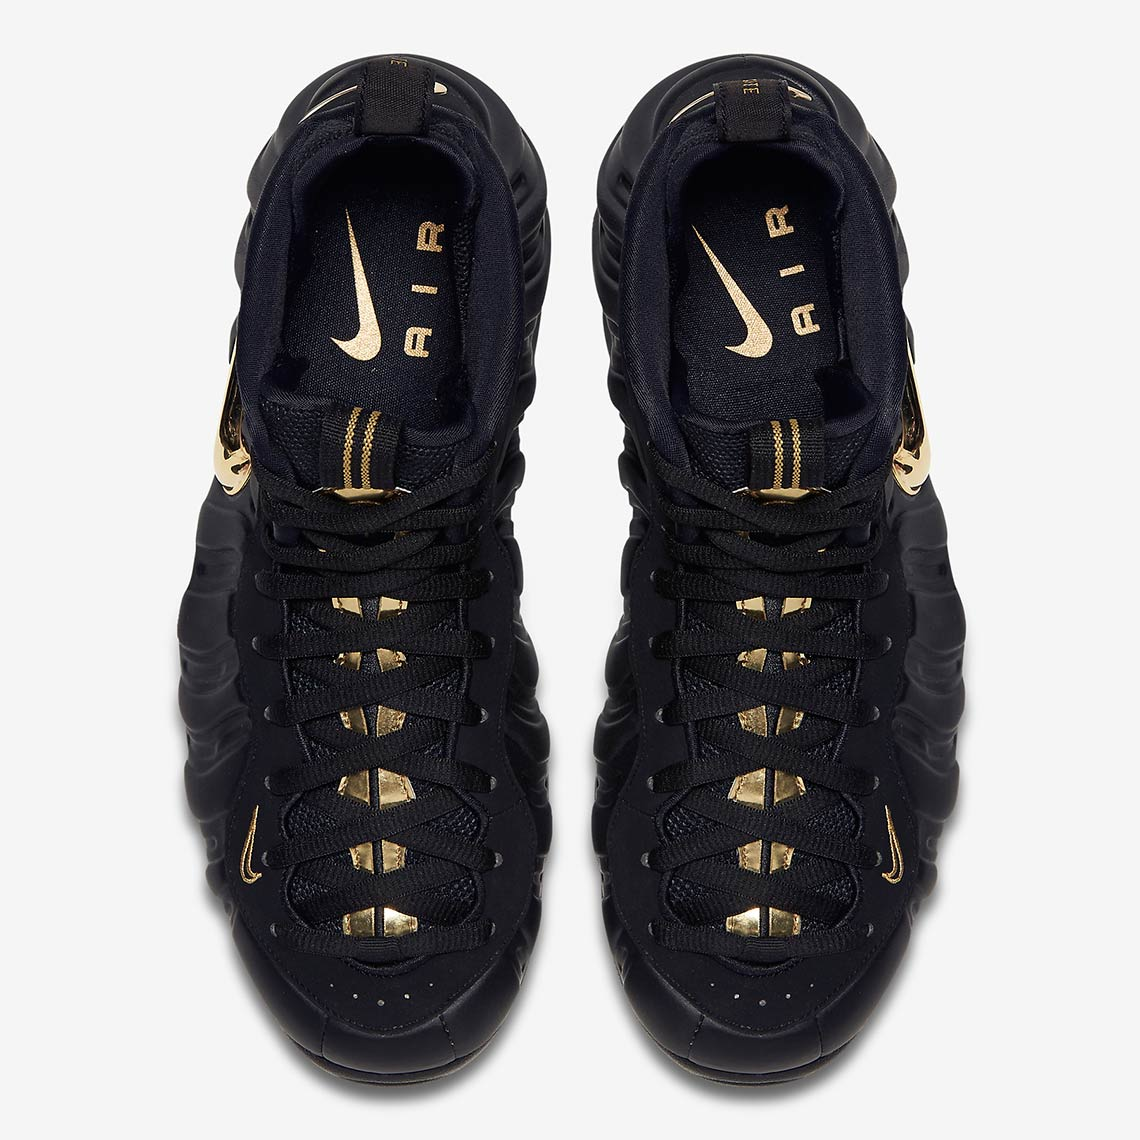 new products 094a3 88c16 Nike Air Foamposite Pro Black Metallic Gold 624041-009 ...